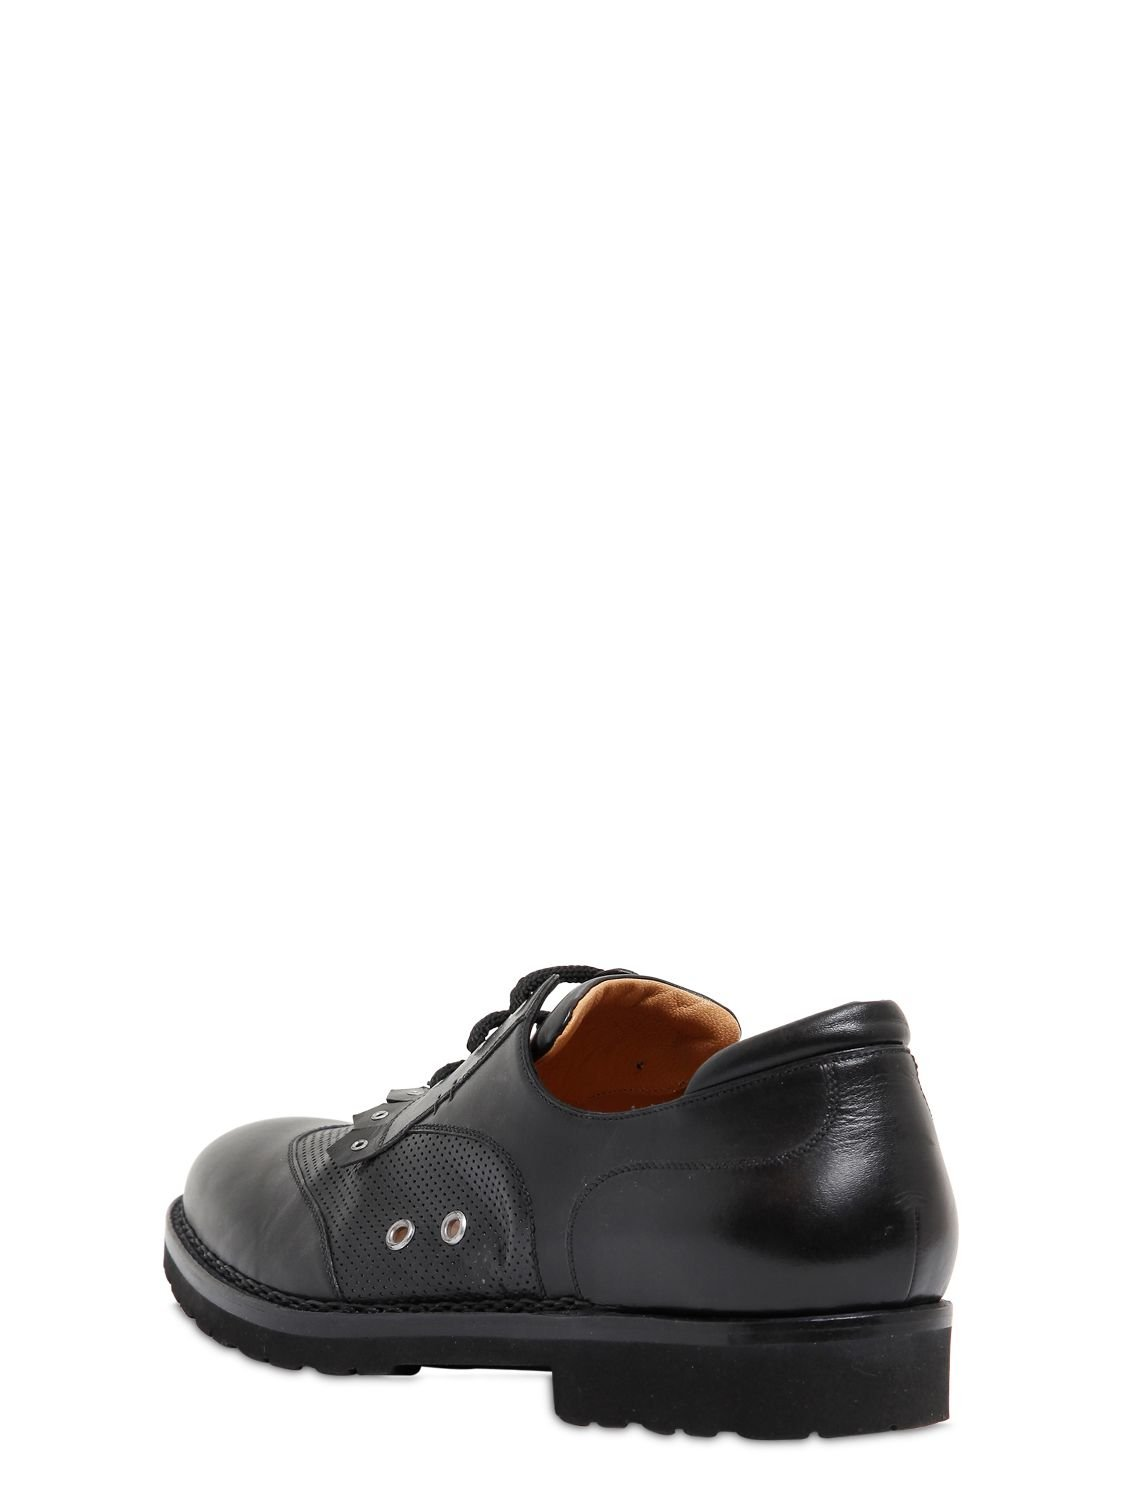 A.Testoni Perforated Leather Oxford Lace-up Shoes in Black for Men